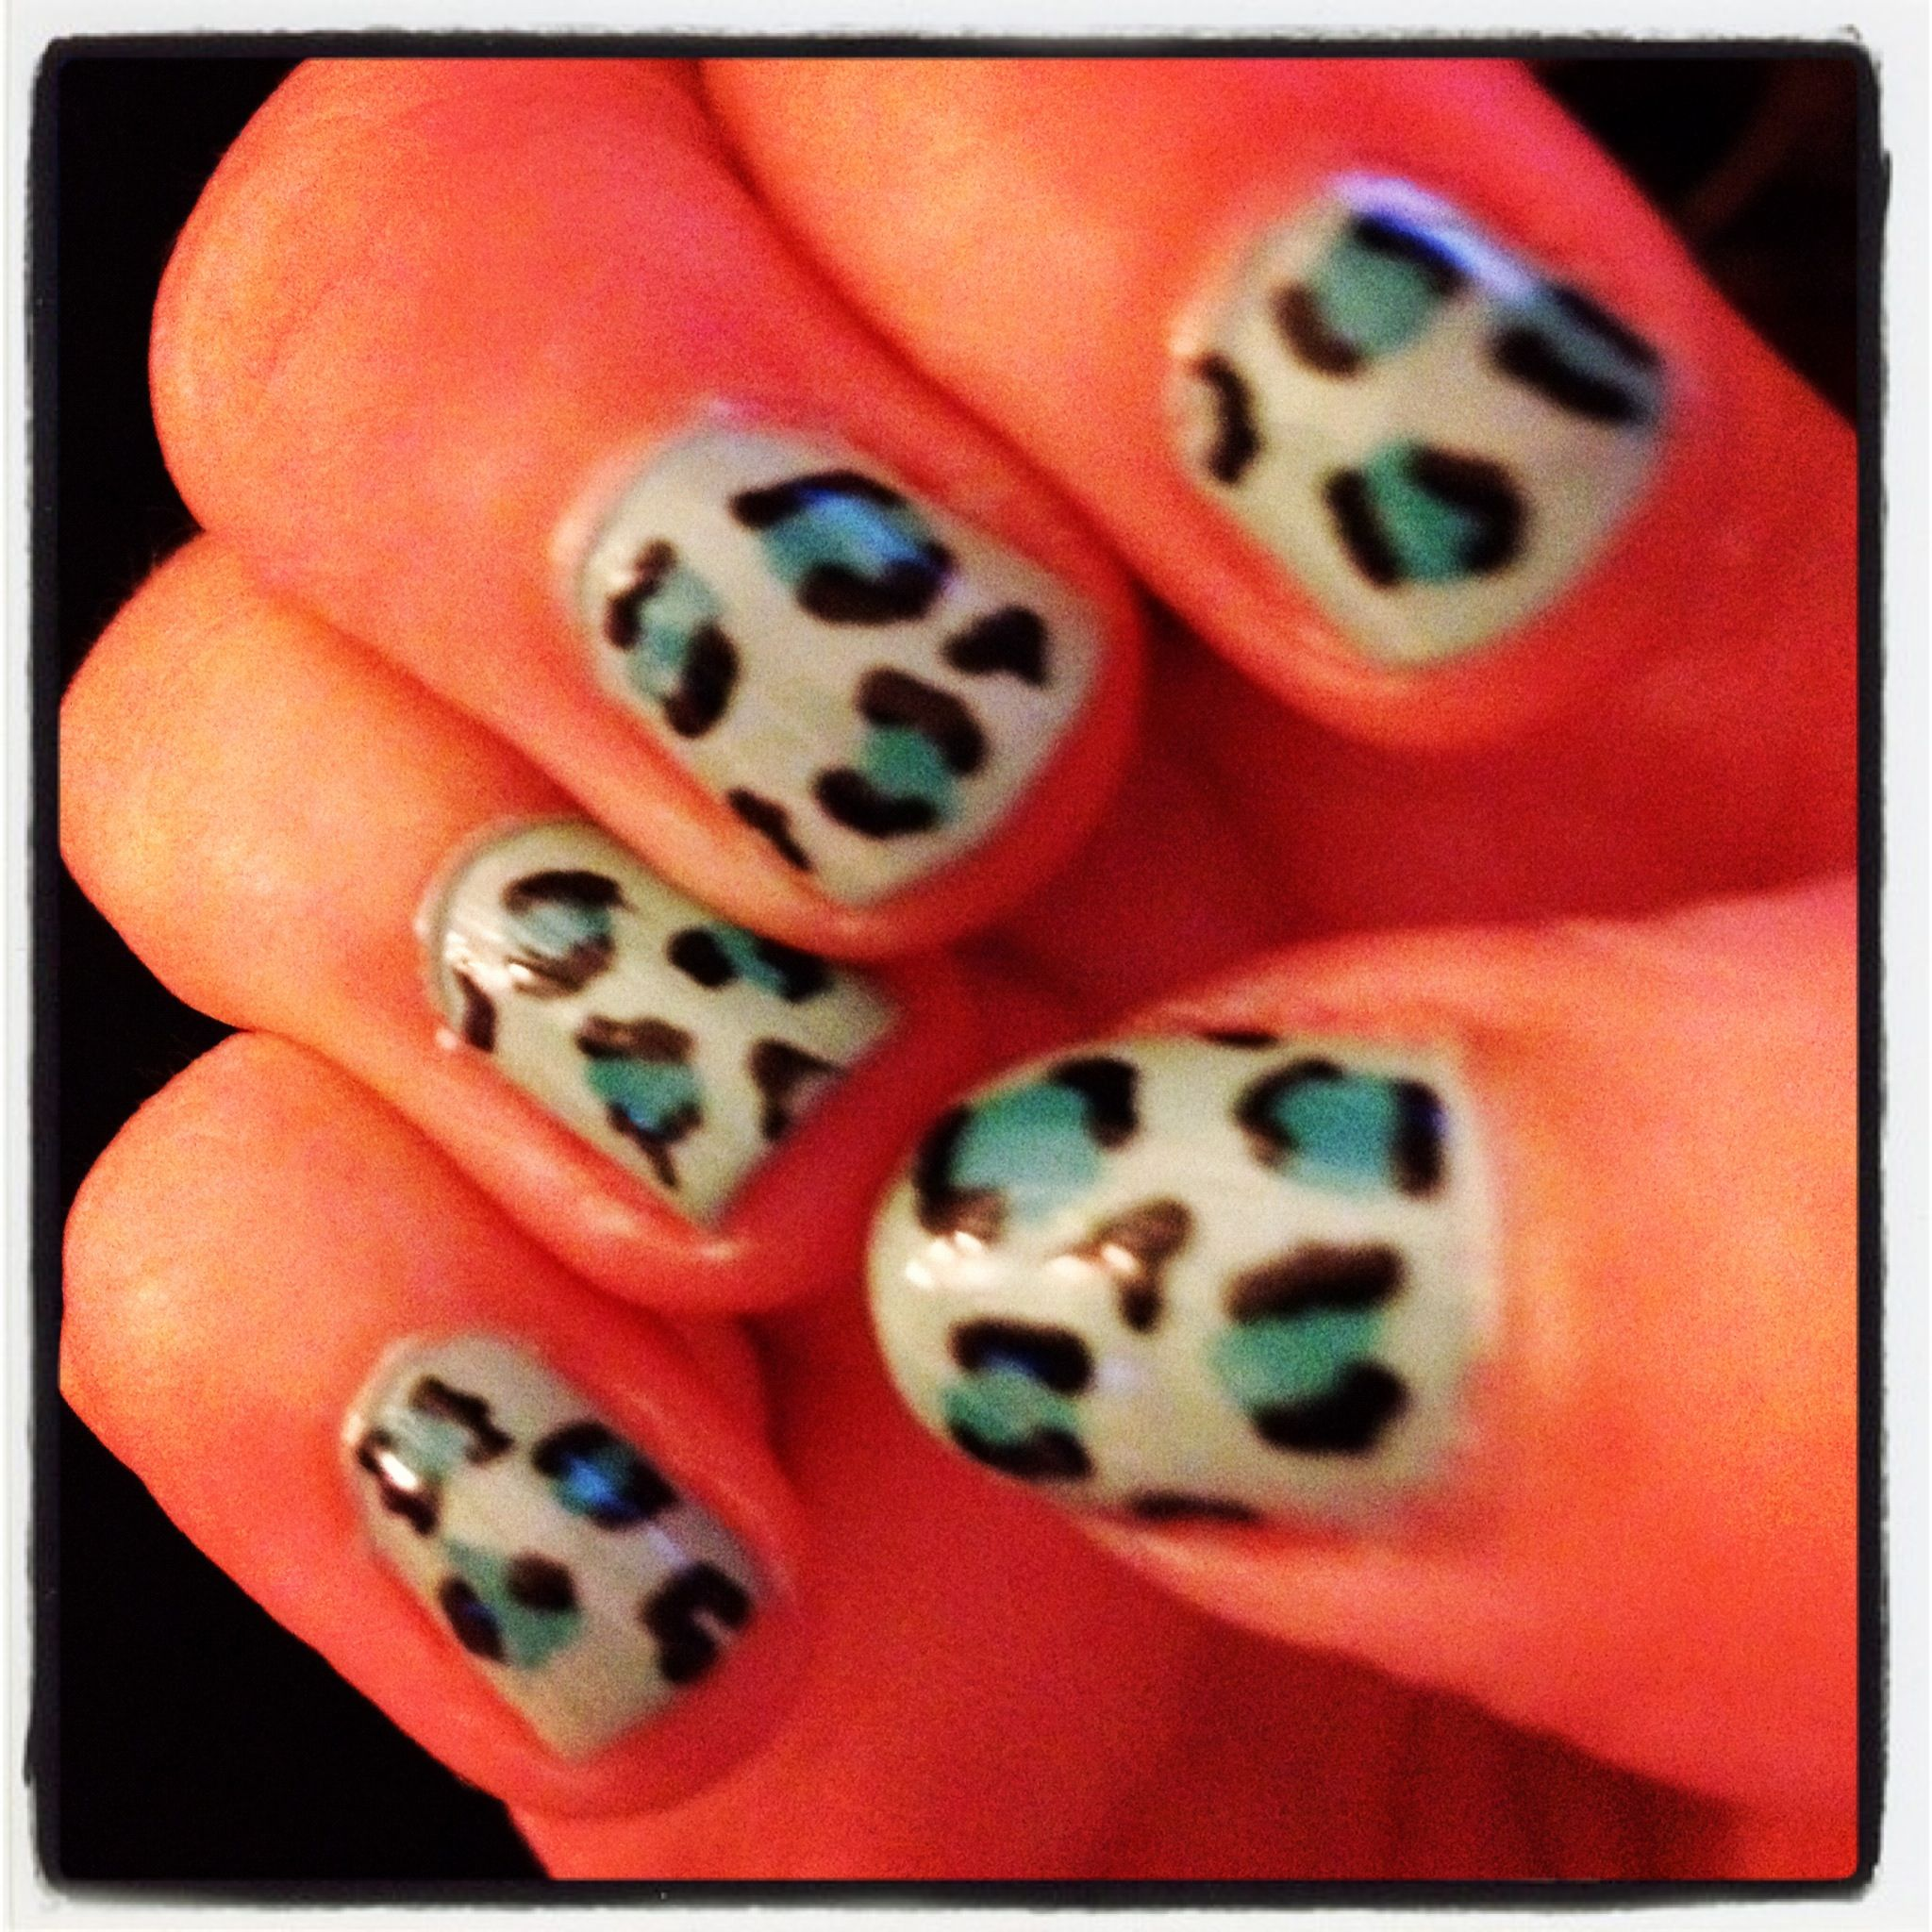 Elf Mint Green Models Own Turquoise And Black Nail Art Pen Nail